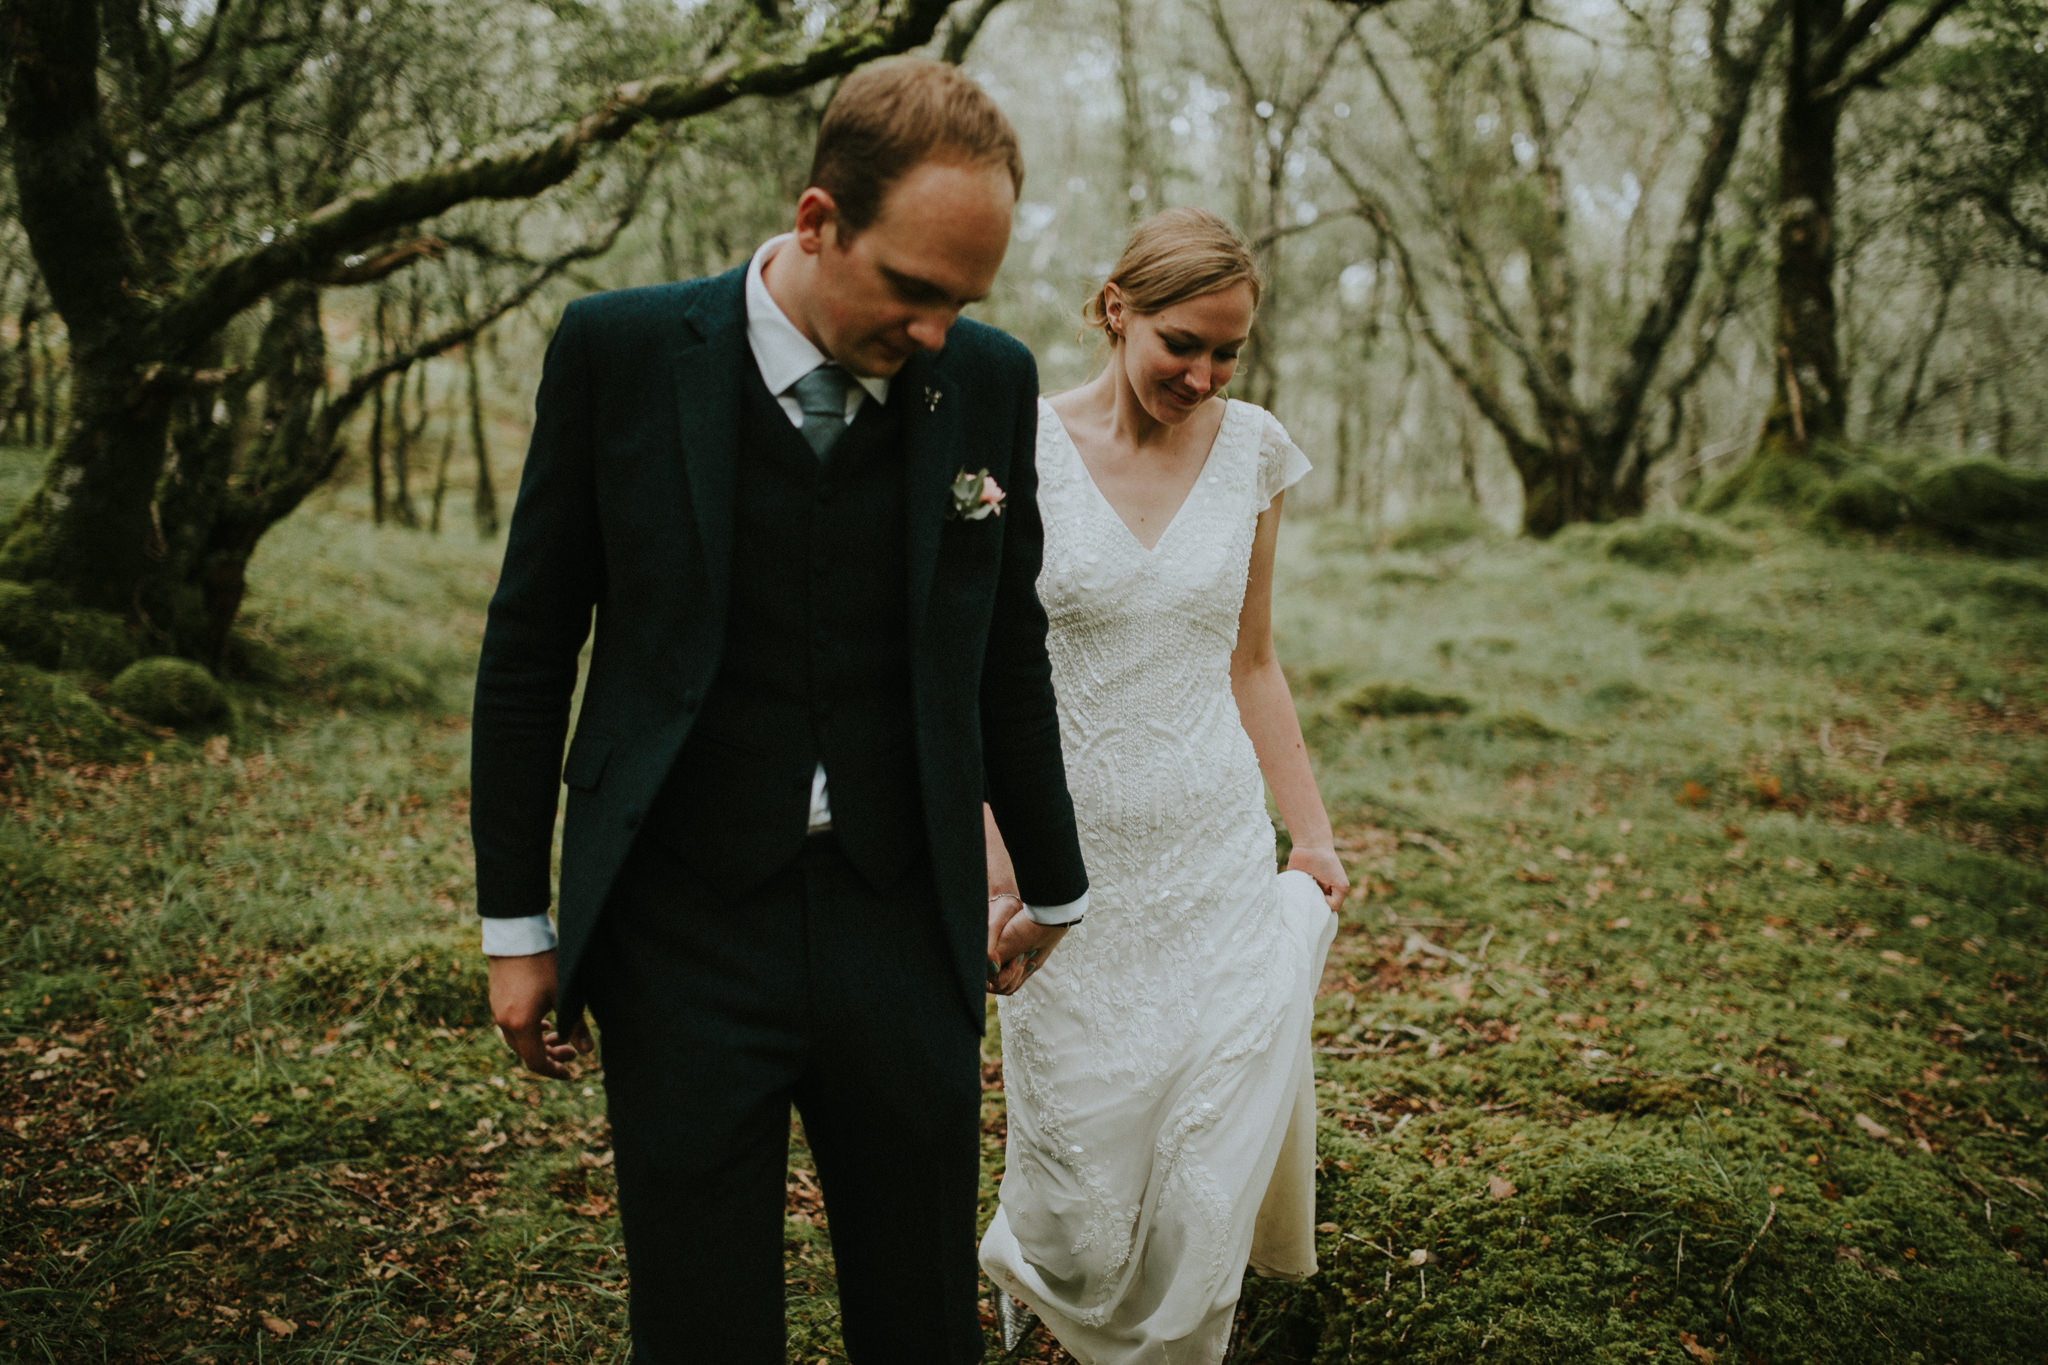 The wedding couple is holding hands and walking through the forest.